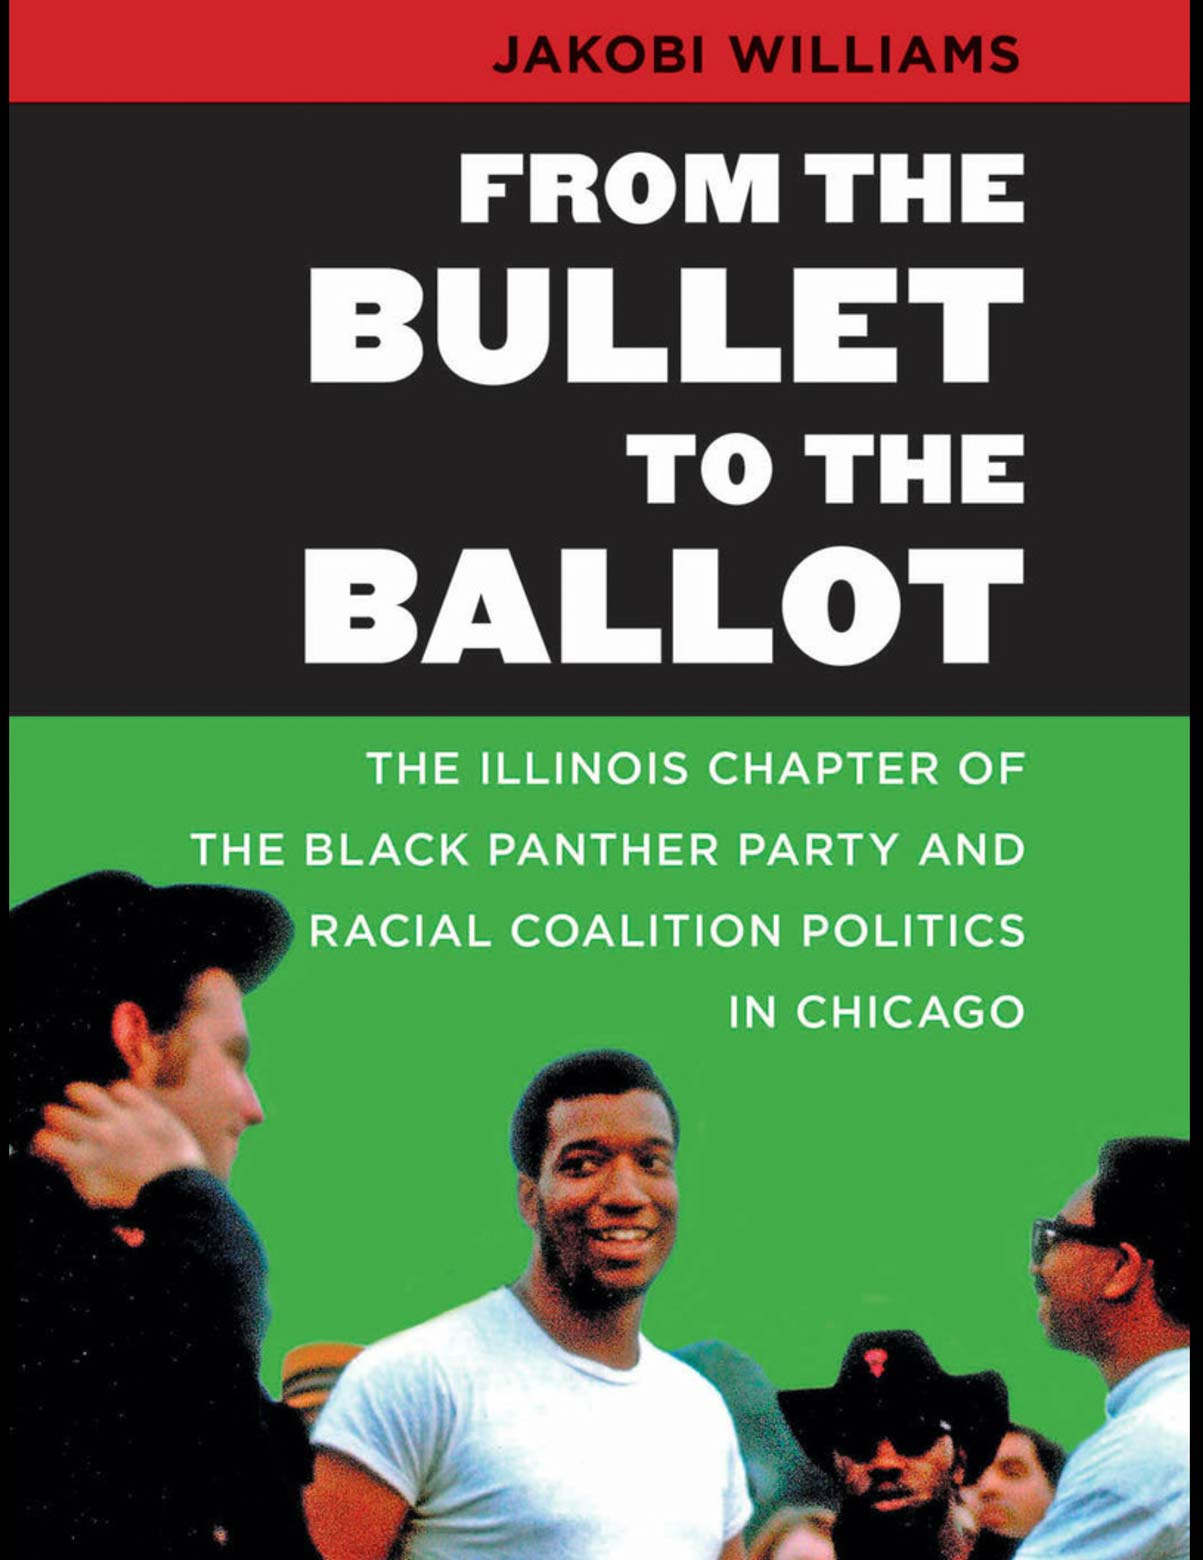 From the Bullet to the Ballot: The Illinois Chapter of the Black Panther Party and Racial Coalition Politics in Chicago